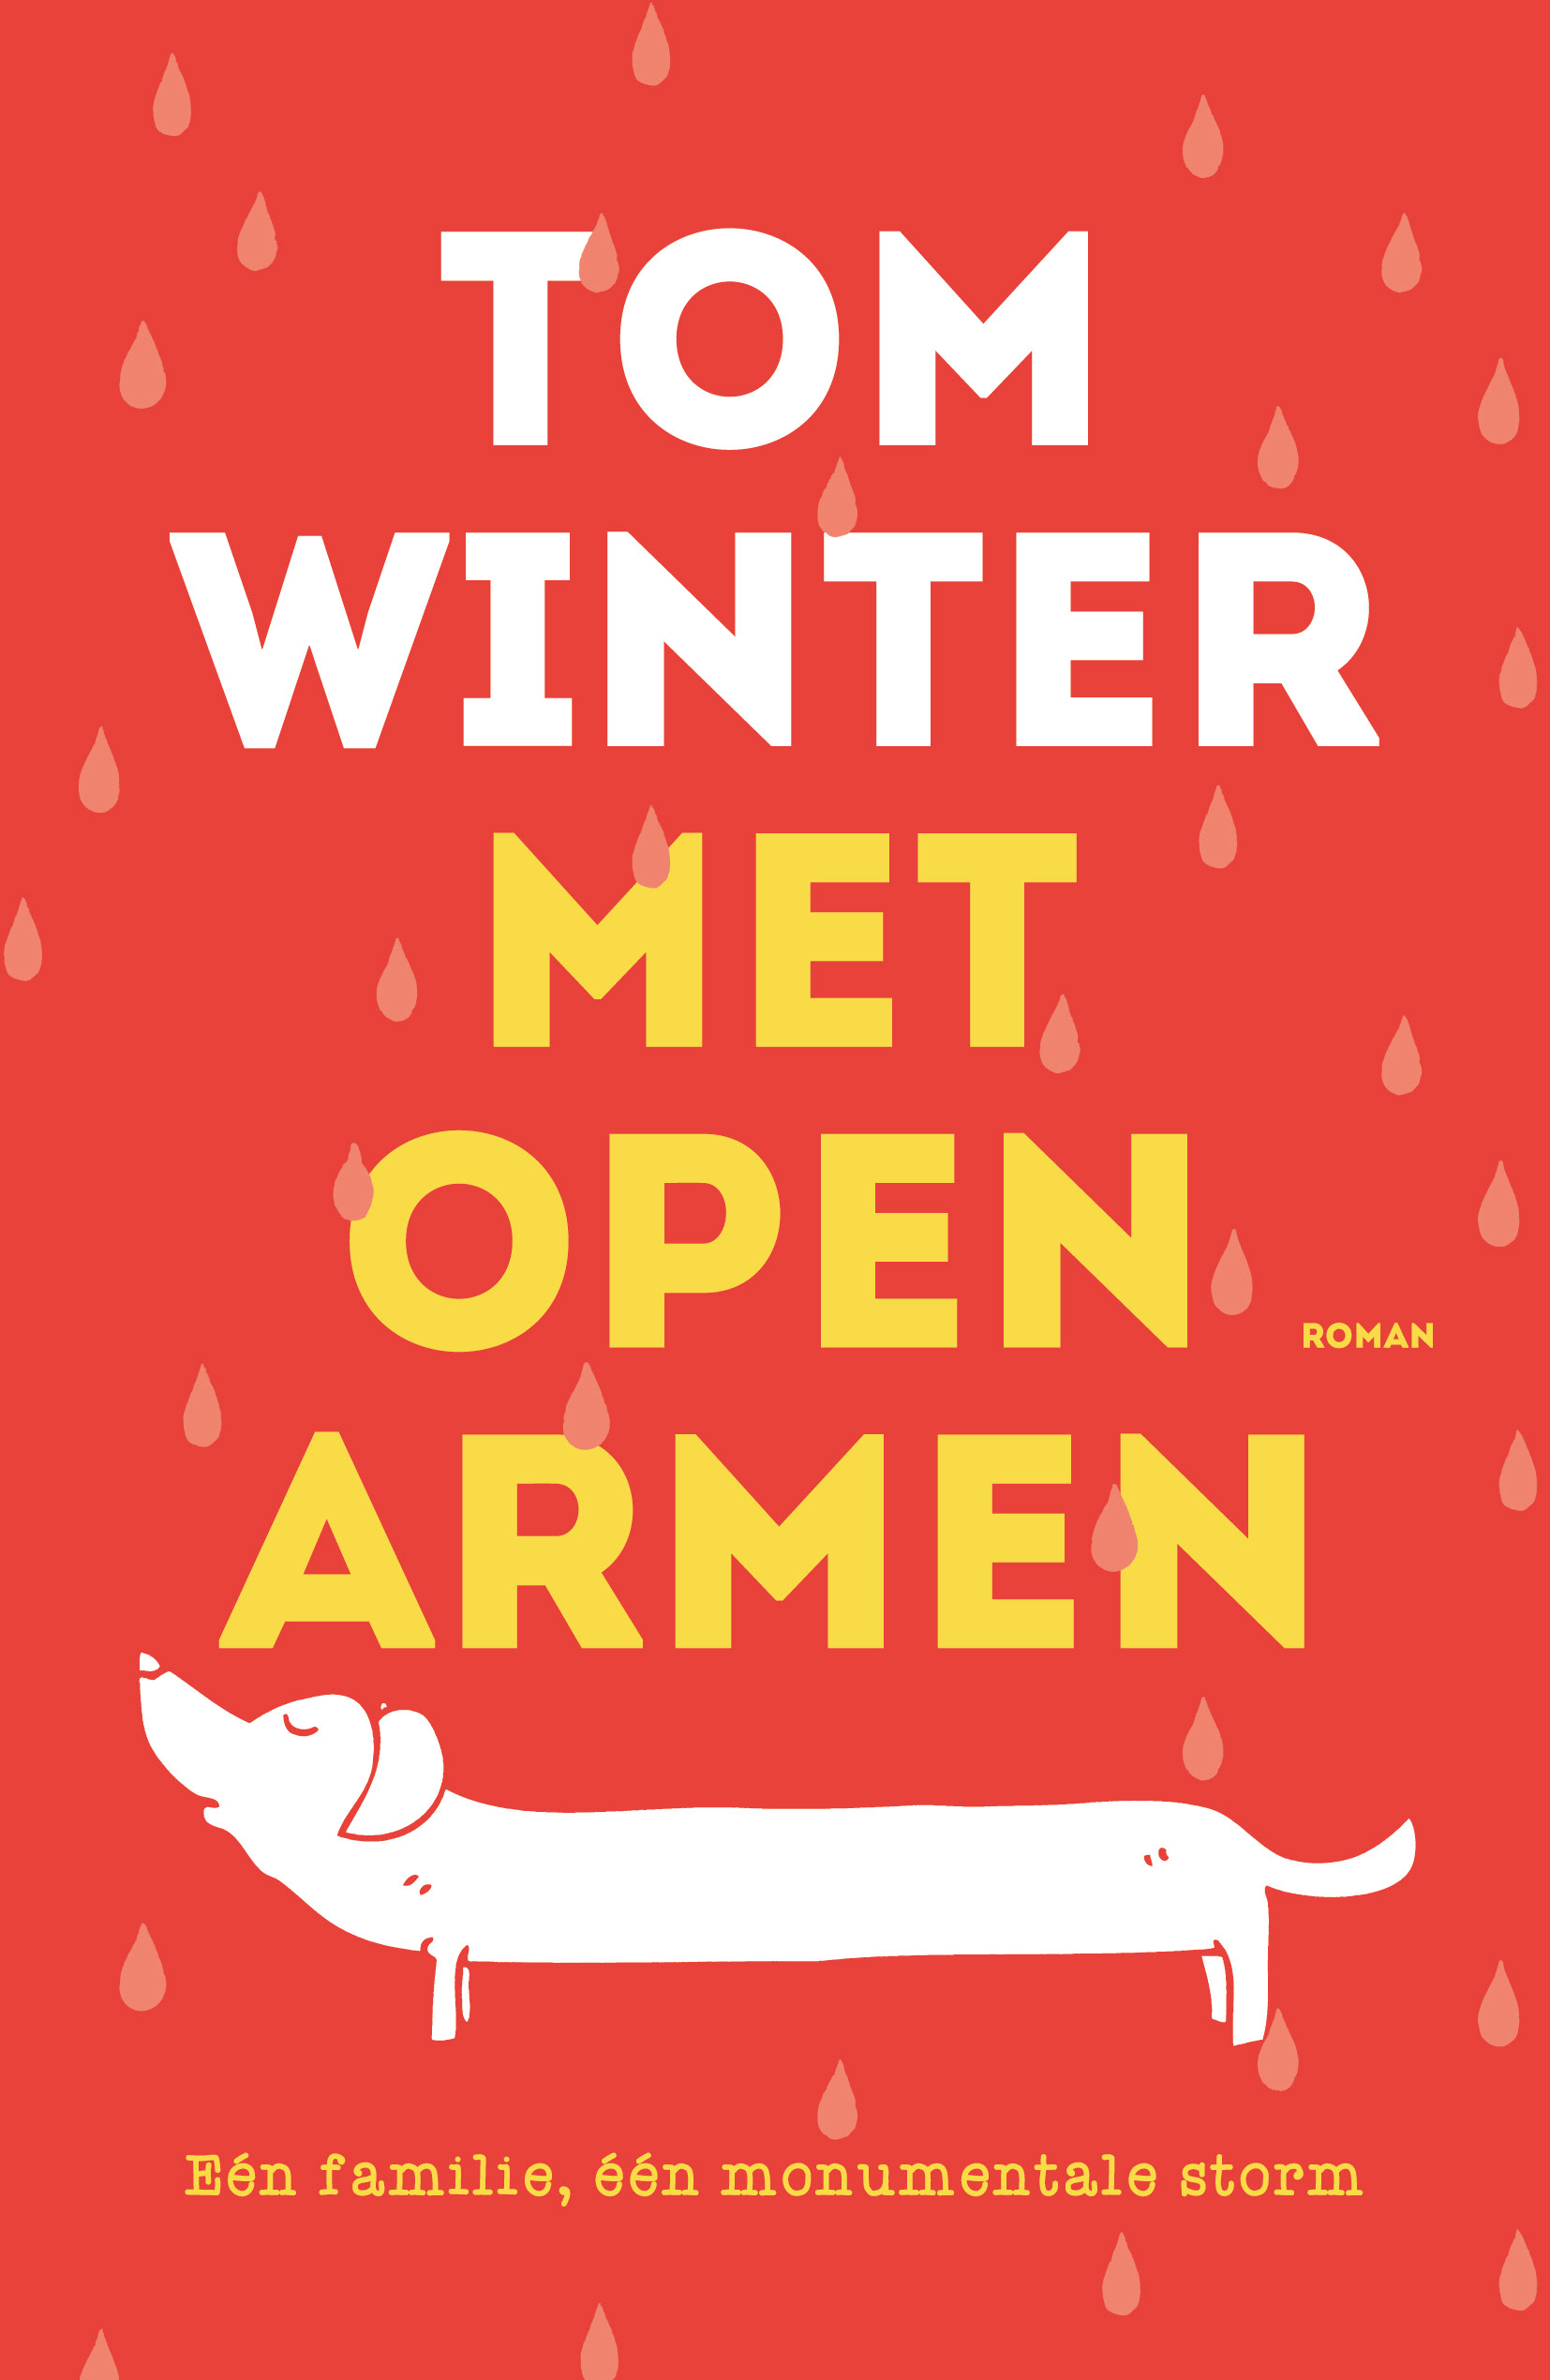 Met open armen – Tom Winter